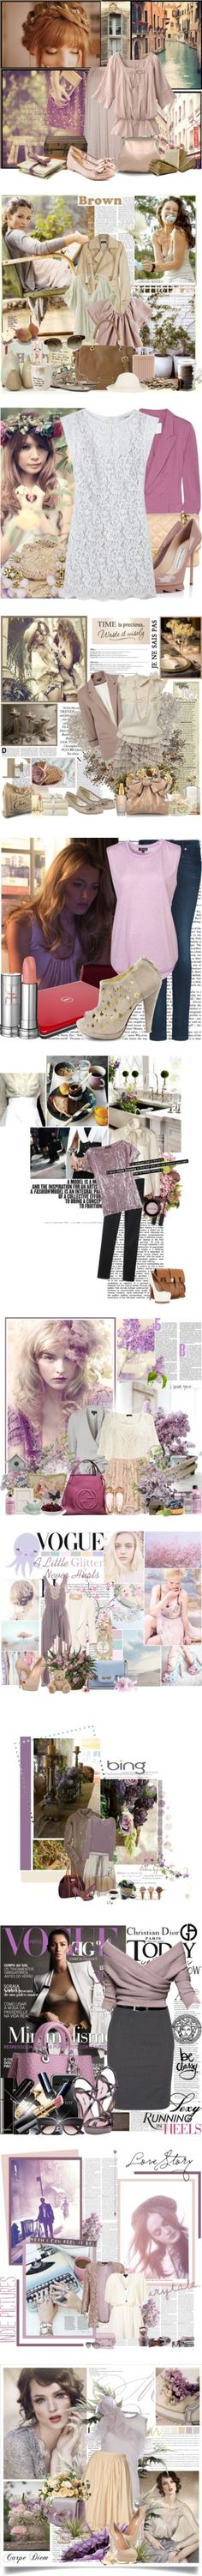 """lilac bush"" by natalinova ❤ liked on Polyvore"